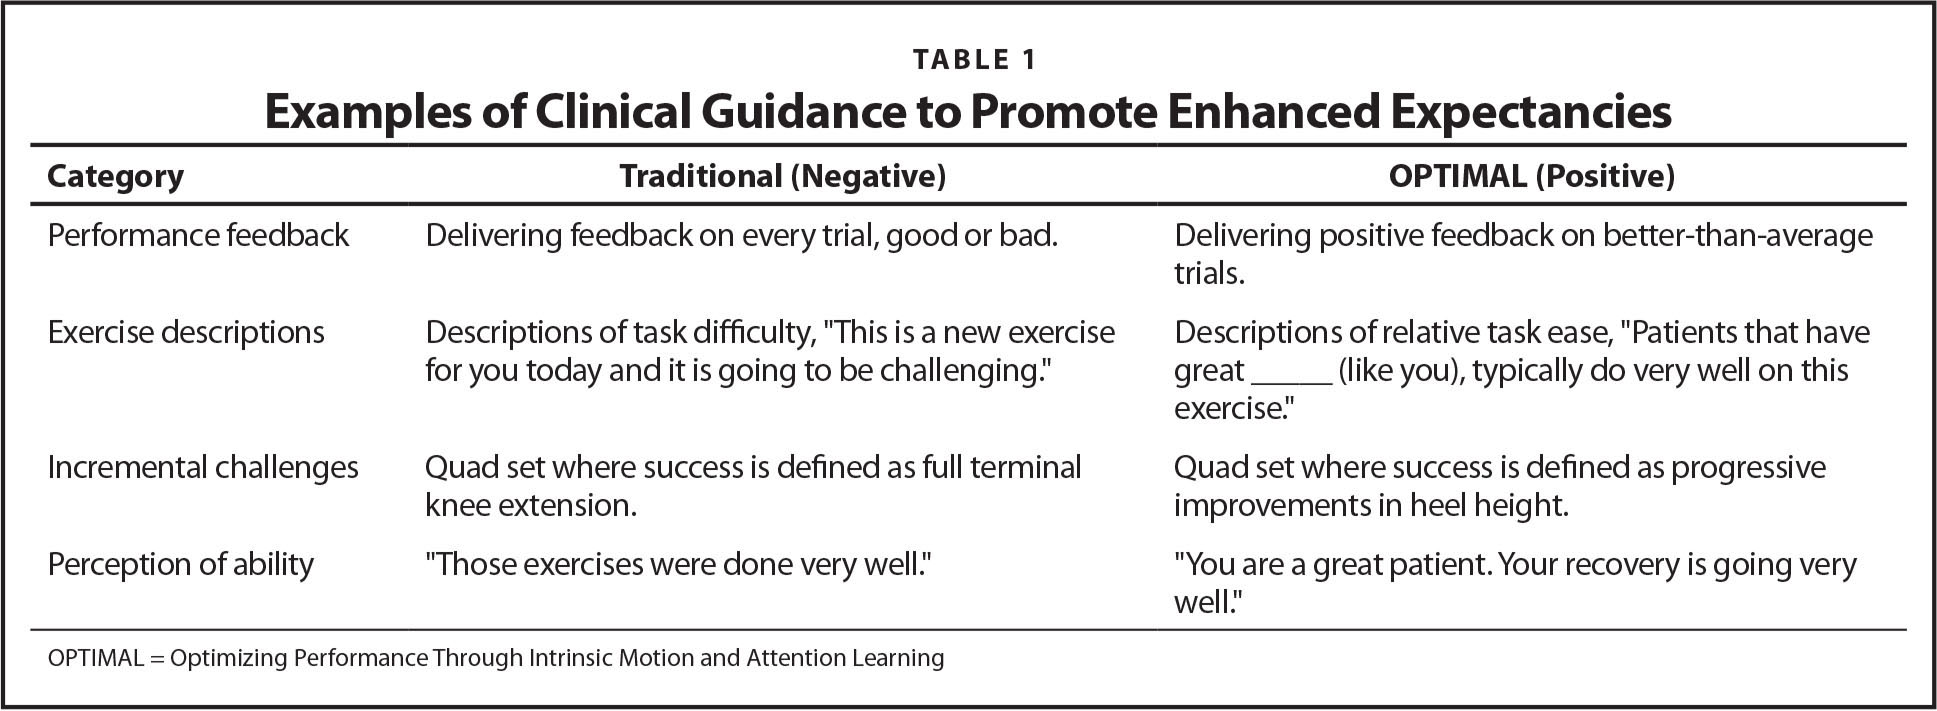 Examples of Clinical Guidance to Promote Enhanced Expectancies